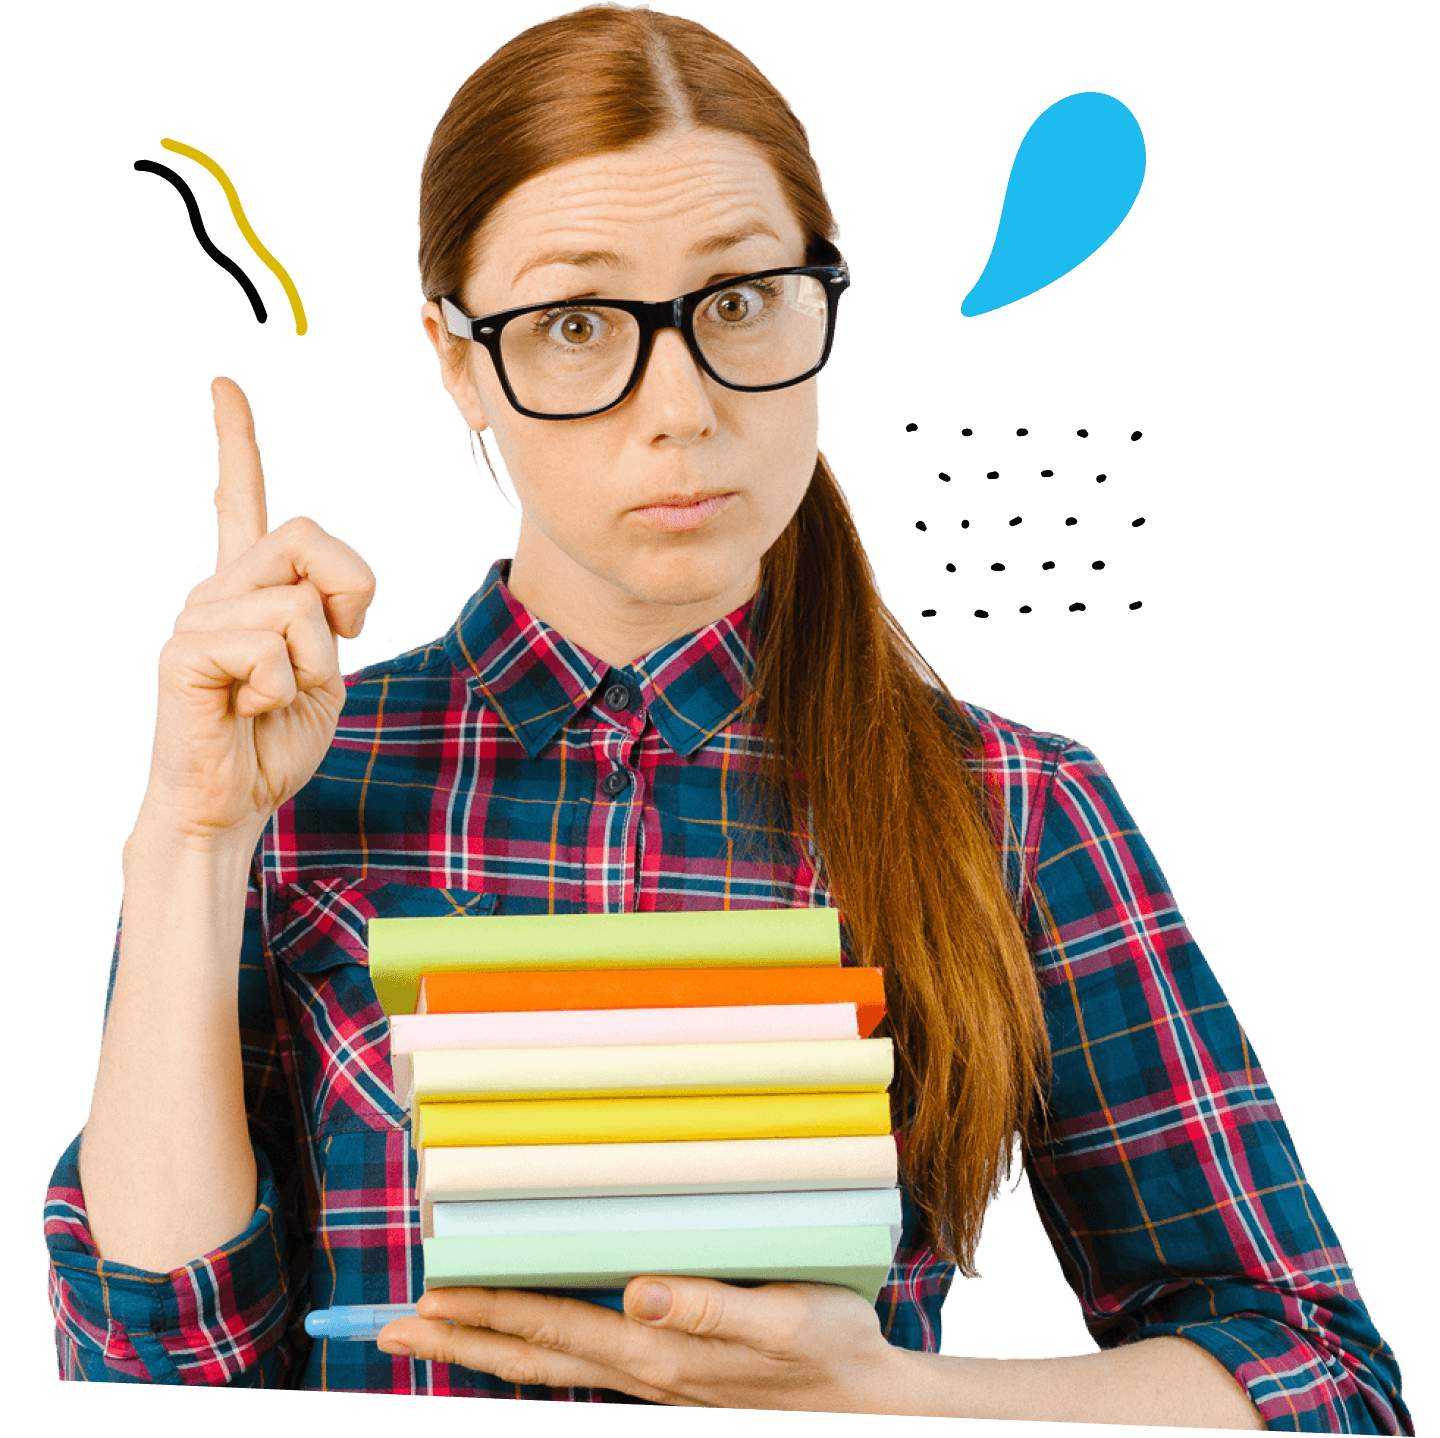 Shmoop's AP Prep tutor, AP Annie, a student with glasses holding a stack of books pointing up with one finger